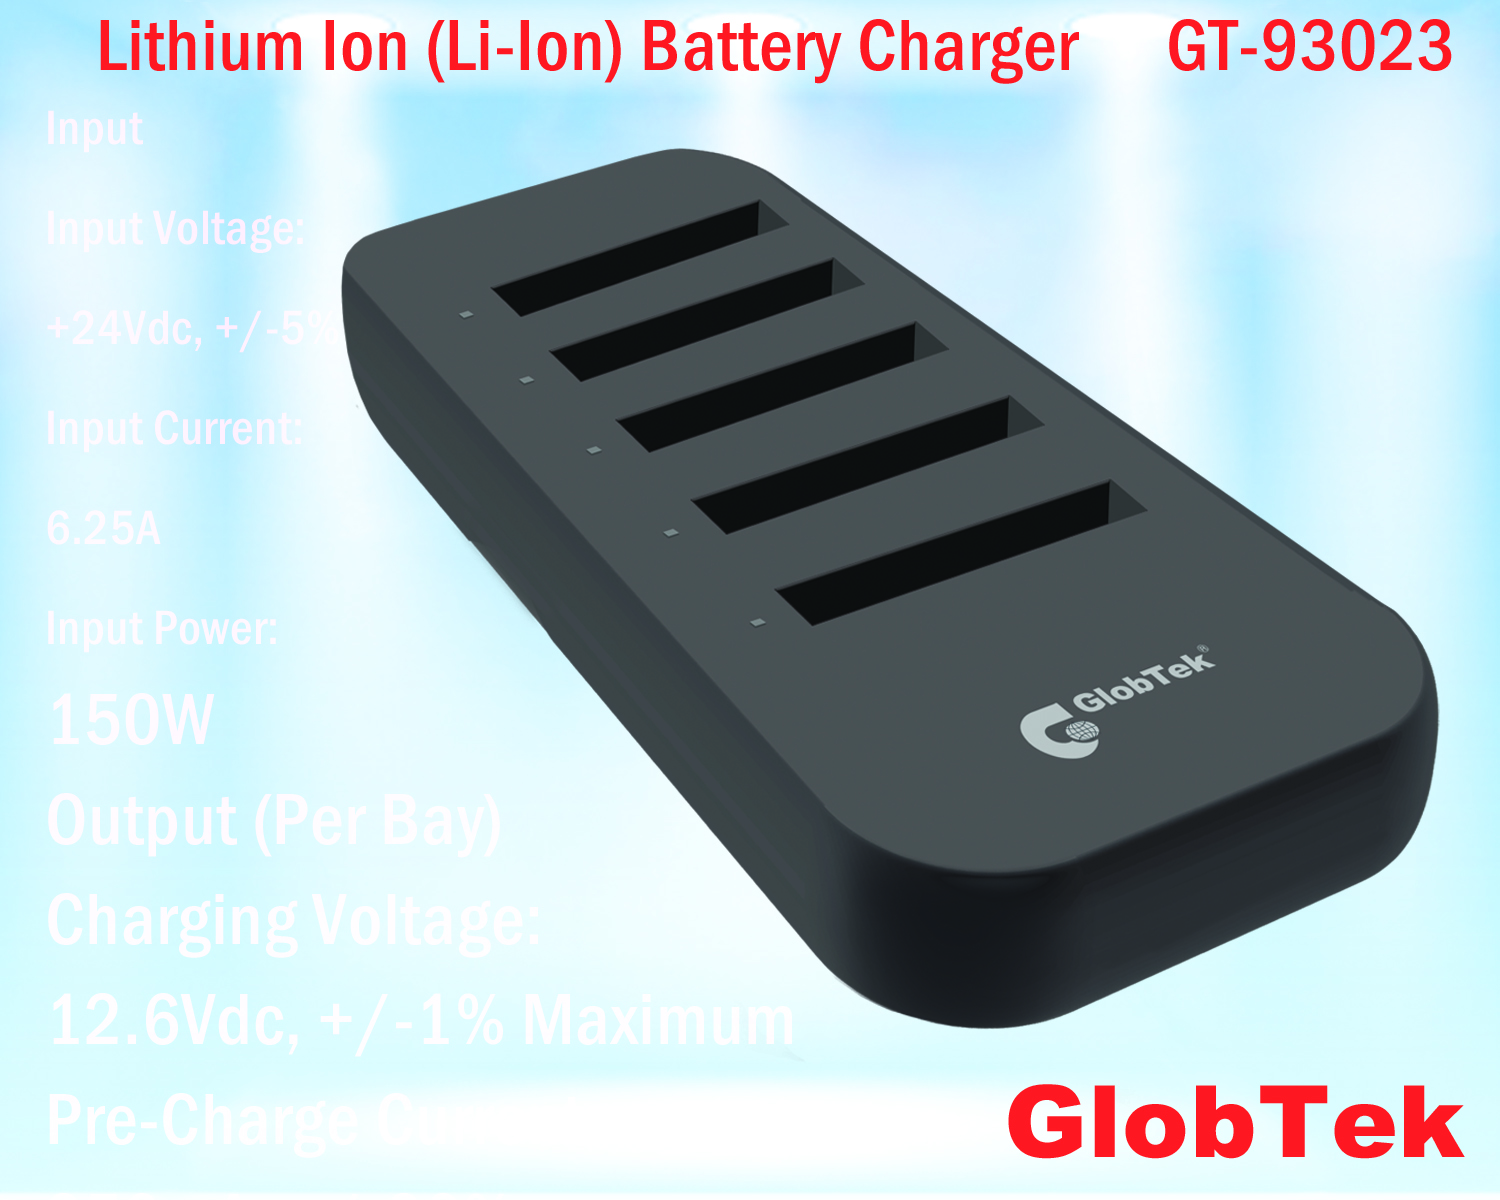 In response to increased concern and requirements of portable equipment and device manufacturers for safety related to Lithium Ion (Li-Ion) batteries, GlobTek's latest generation battery charger designs...